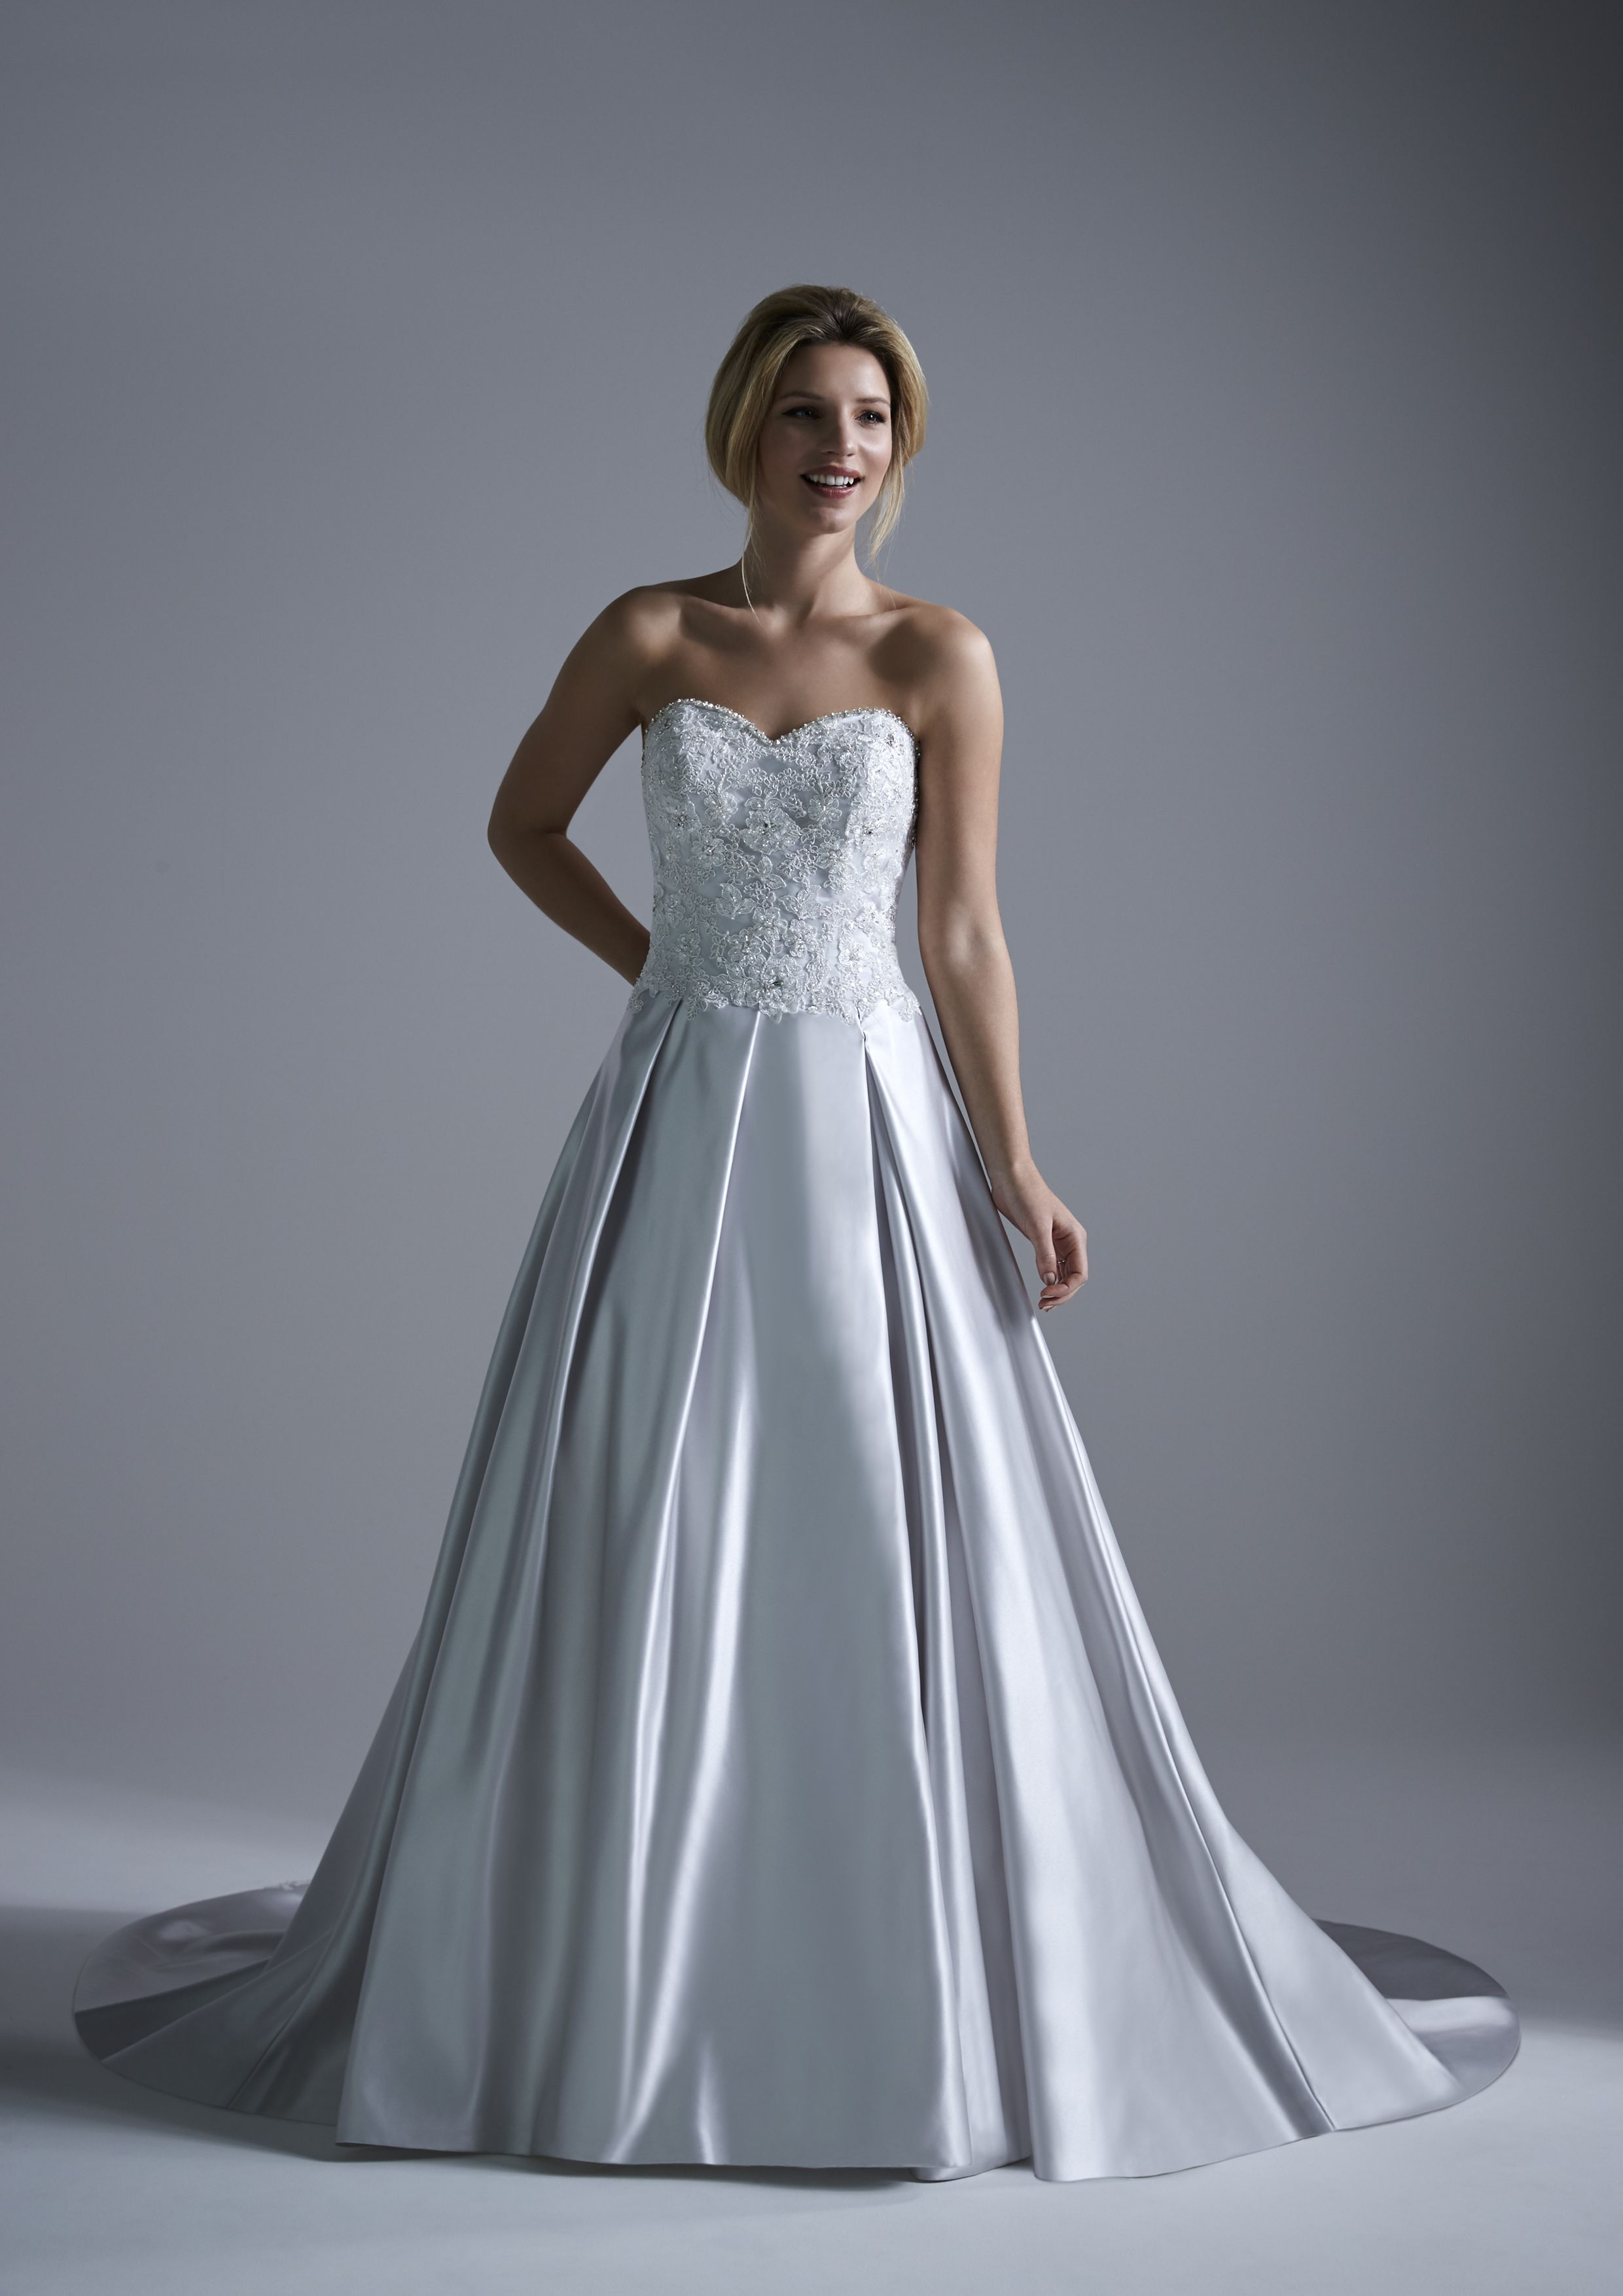 Montana ~ A traditional yet contemporary wedding dress with satin, a ...